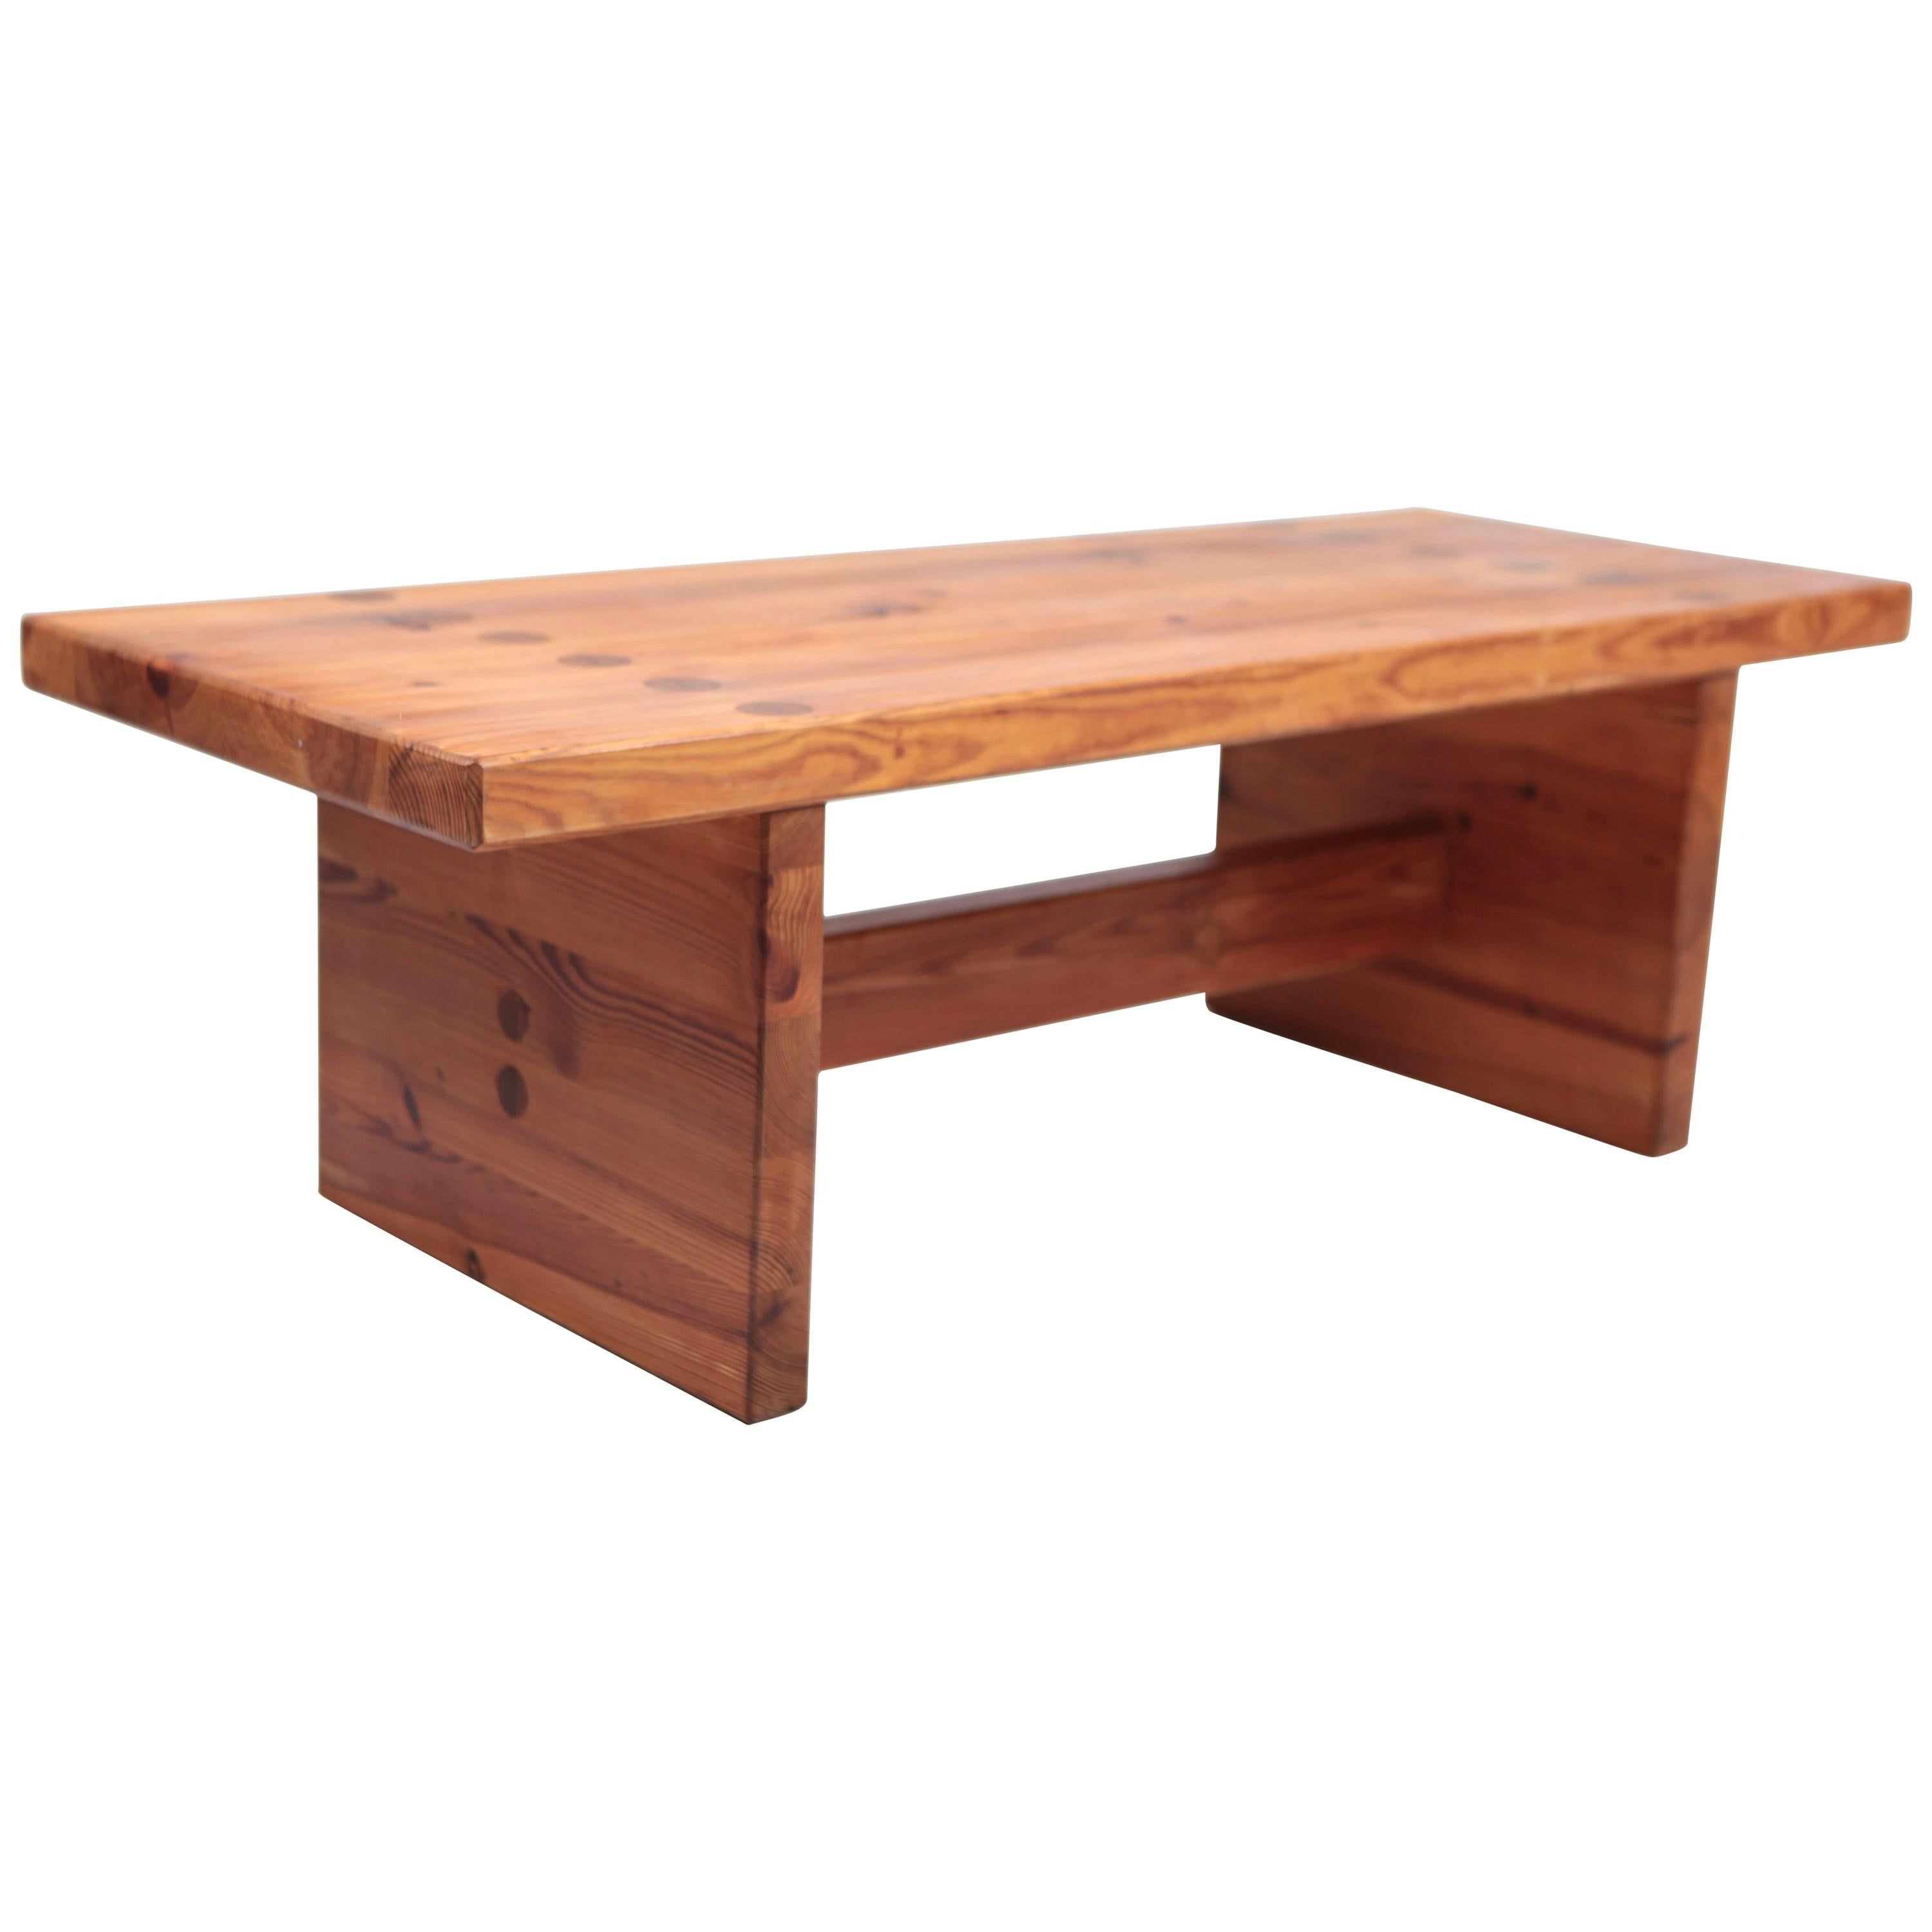 Roland Wilhelmsson, Coffee Table in Pine by Karl Andersson & Söner, Sweden, 1970